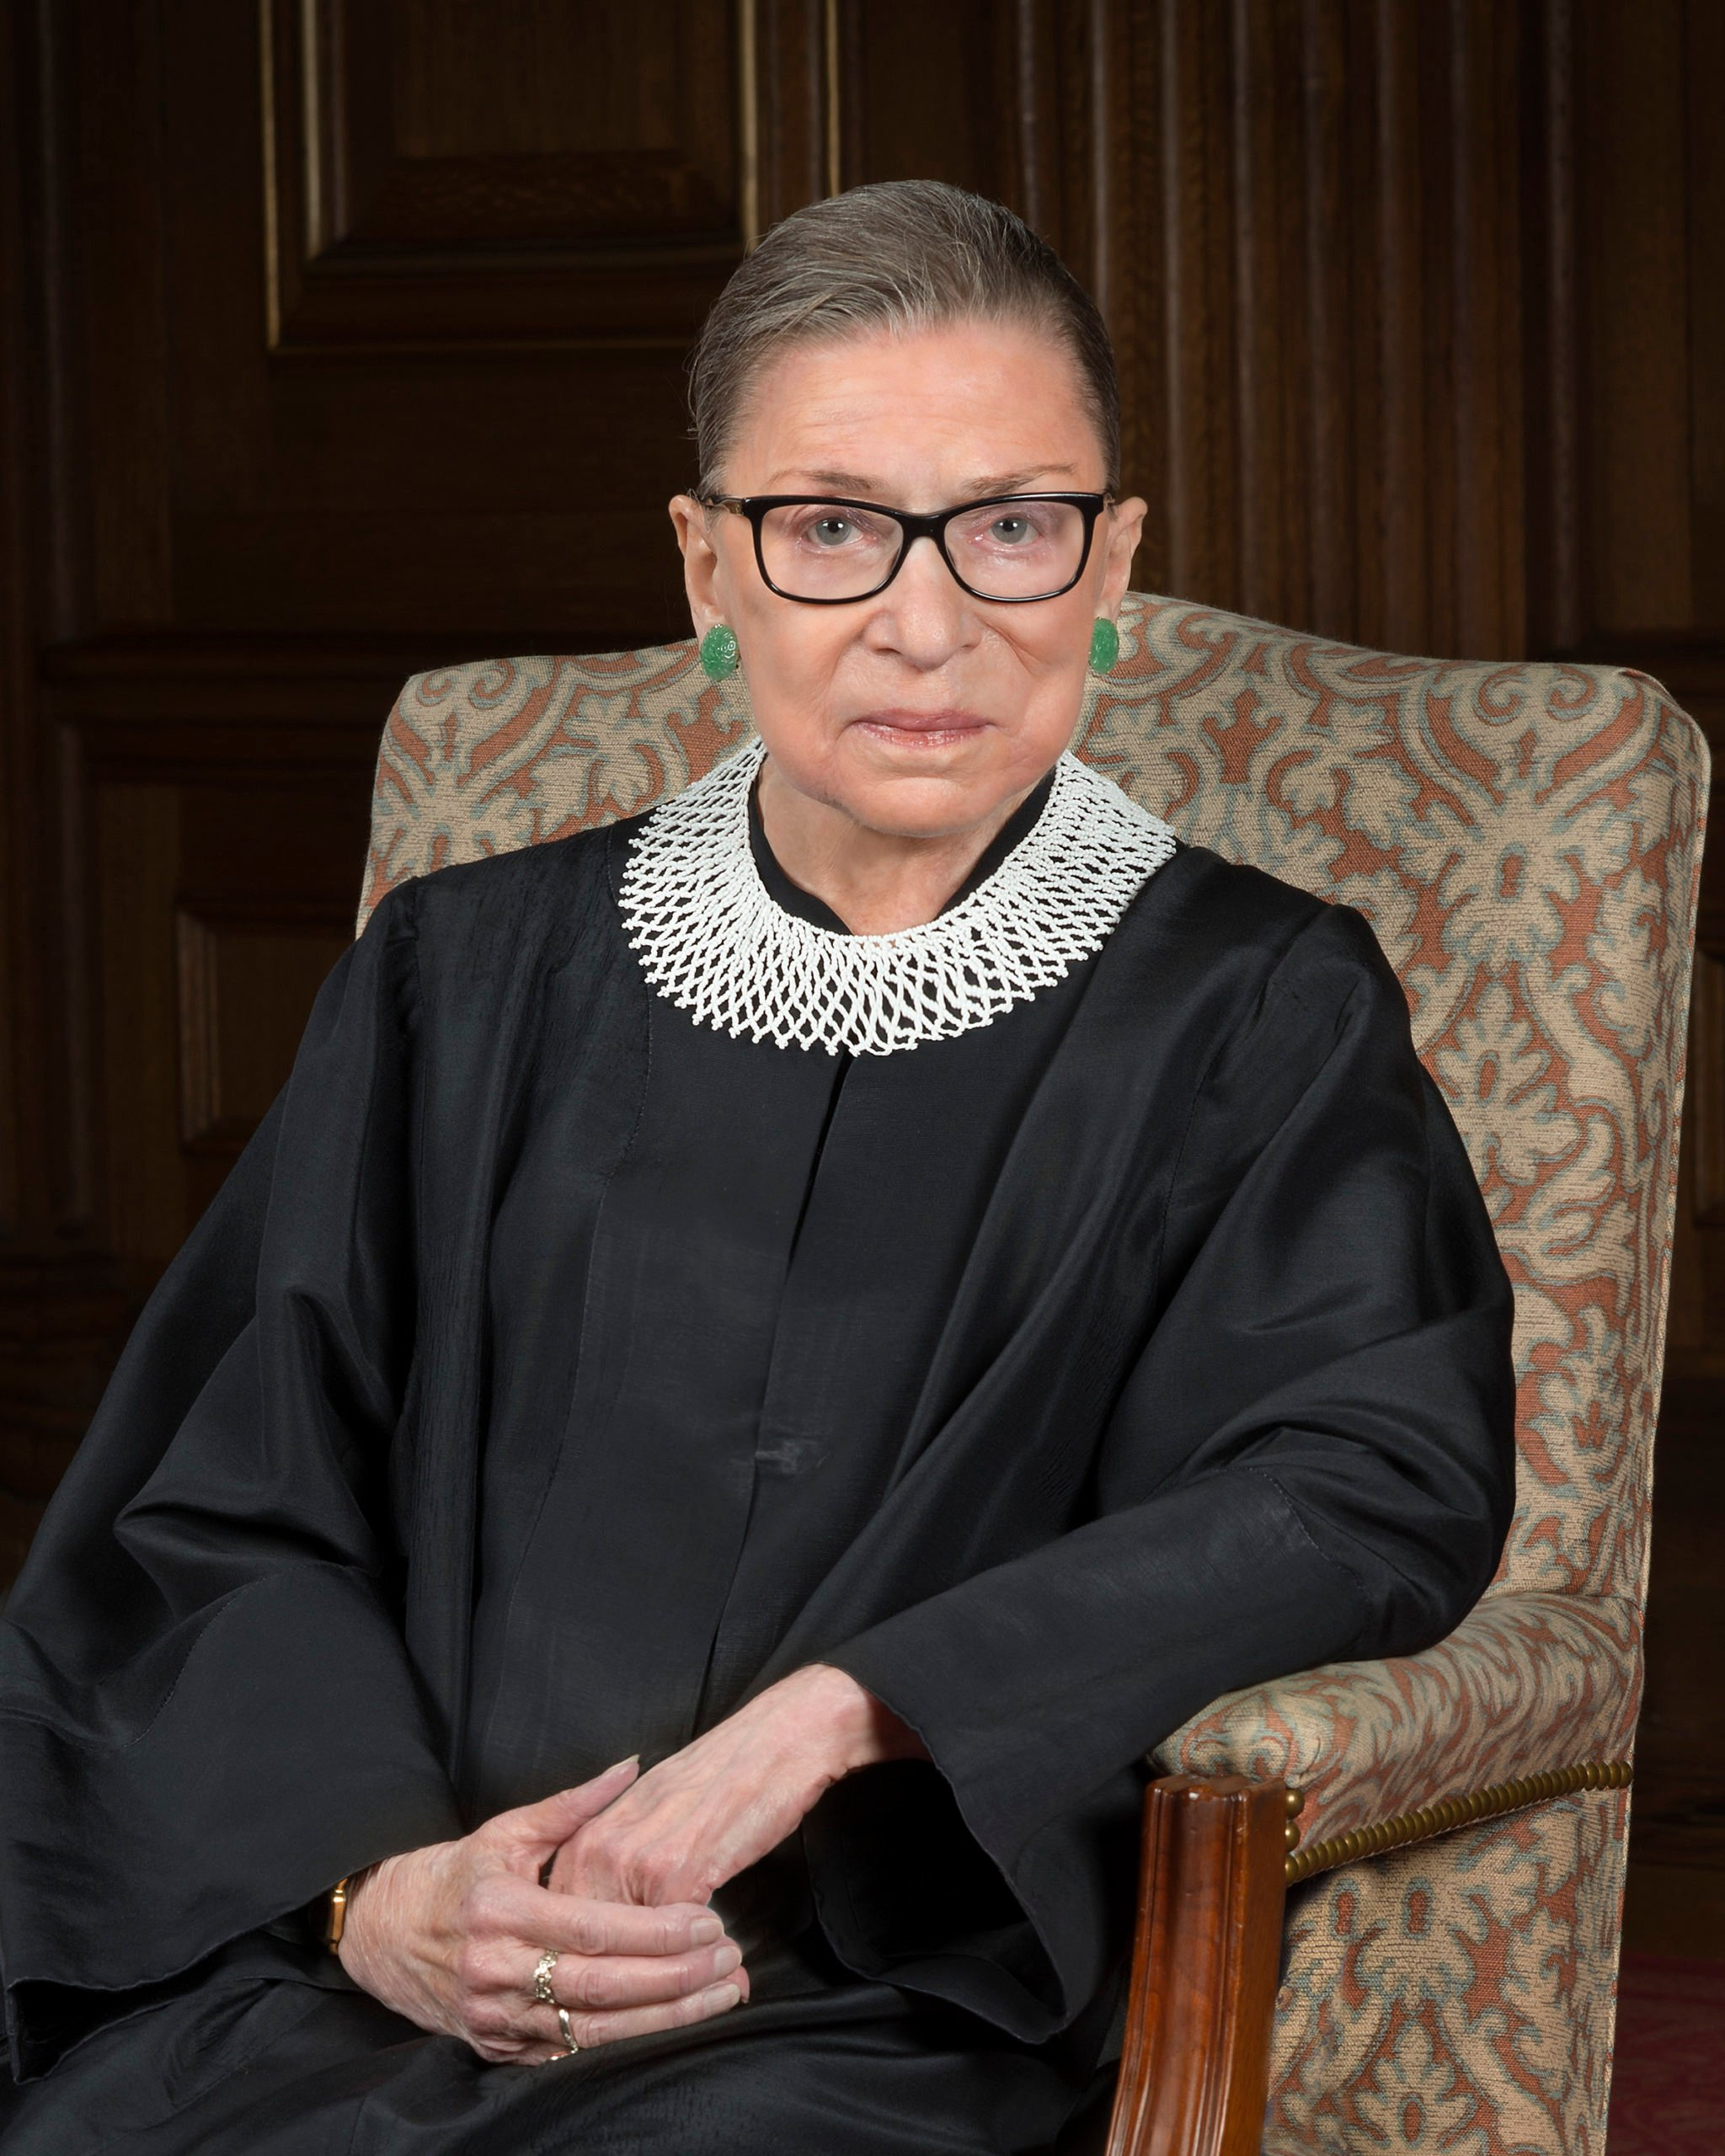 Ruth Bader Ginsburg would be an ideal namesake for Woodrow Wilson High School